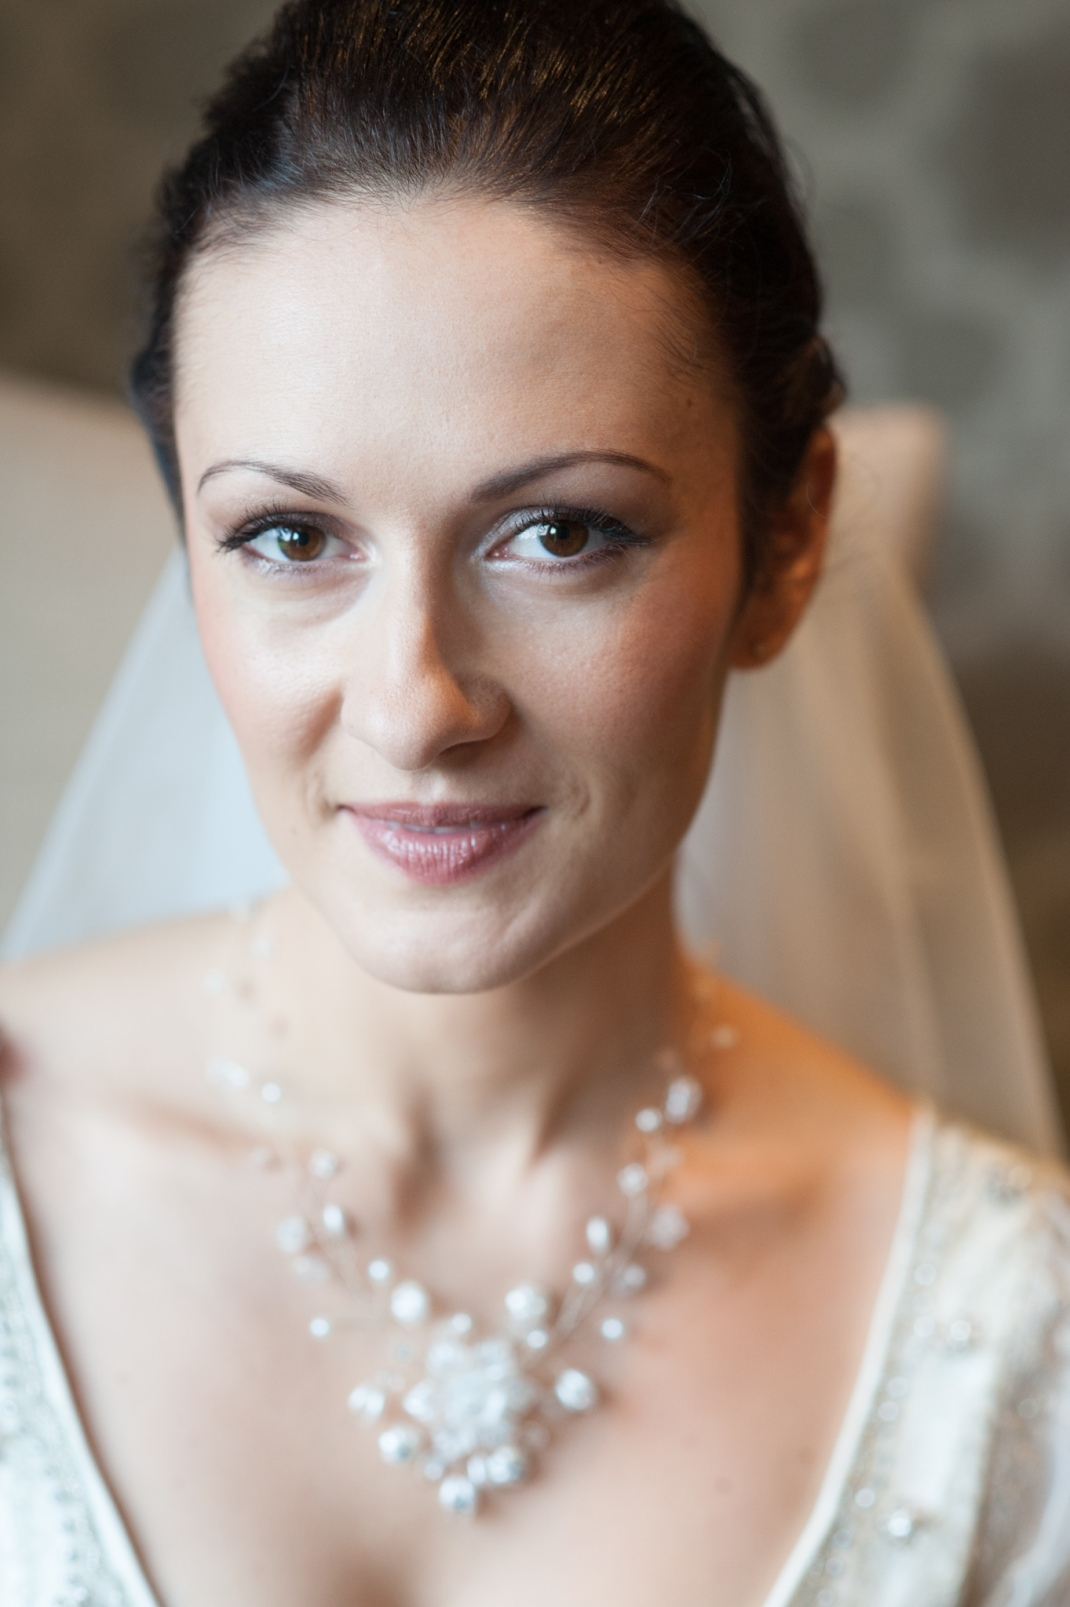 close up, bridal portrait, wedding, bride, stunning